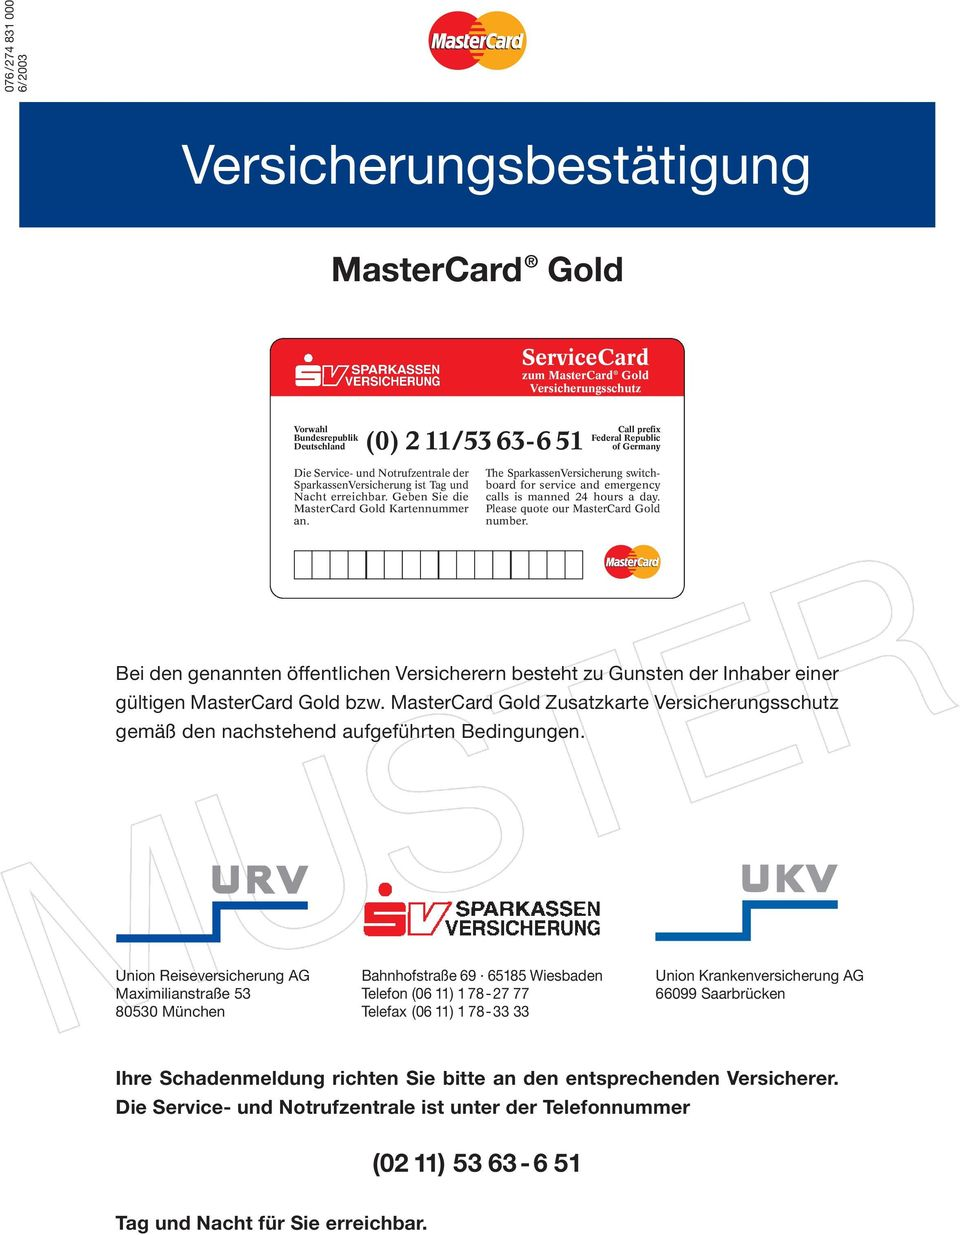 The SparkassenVersicherung switchboard for service and emergency calls is manned 24 hours a day. Please quote our MasterCard Gold number.